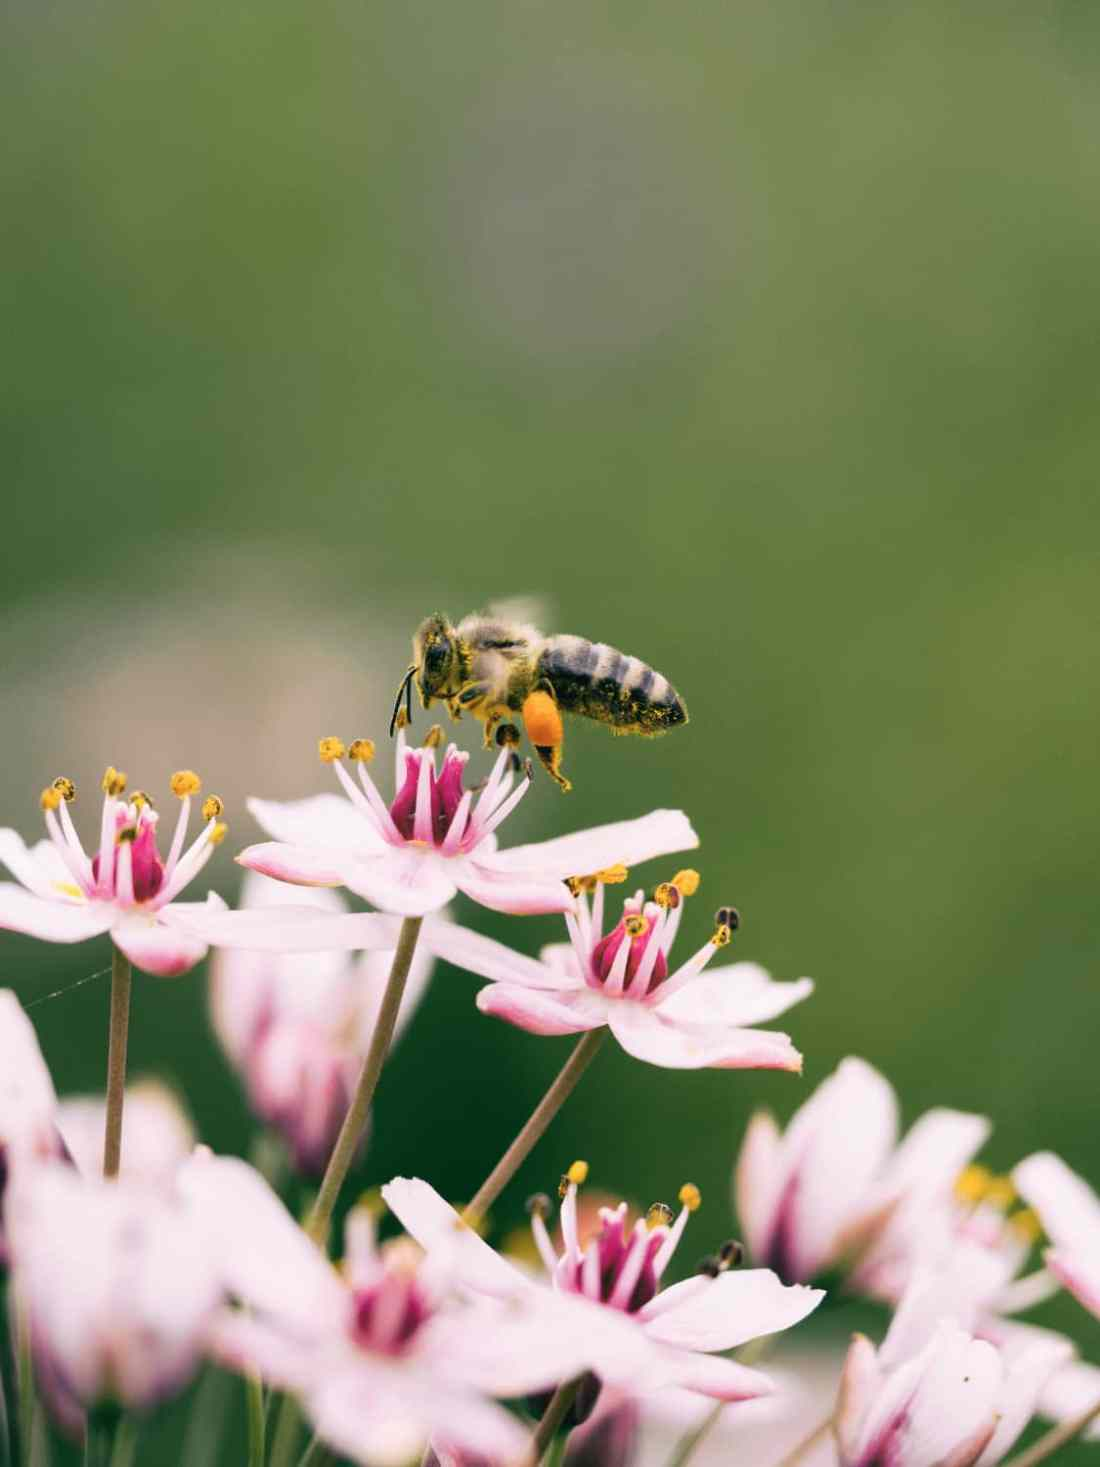 a picture of a wasp on a pink flower